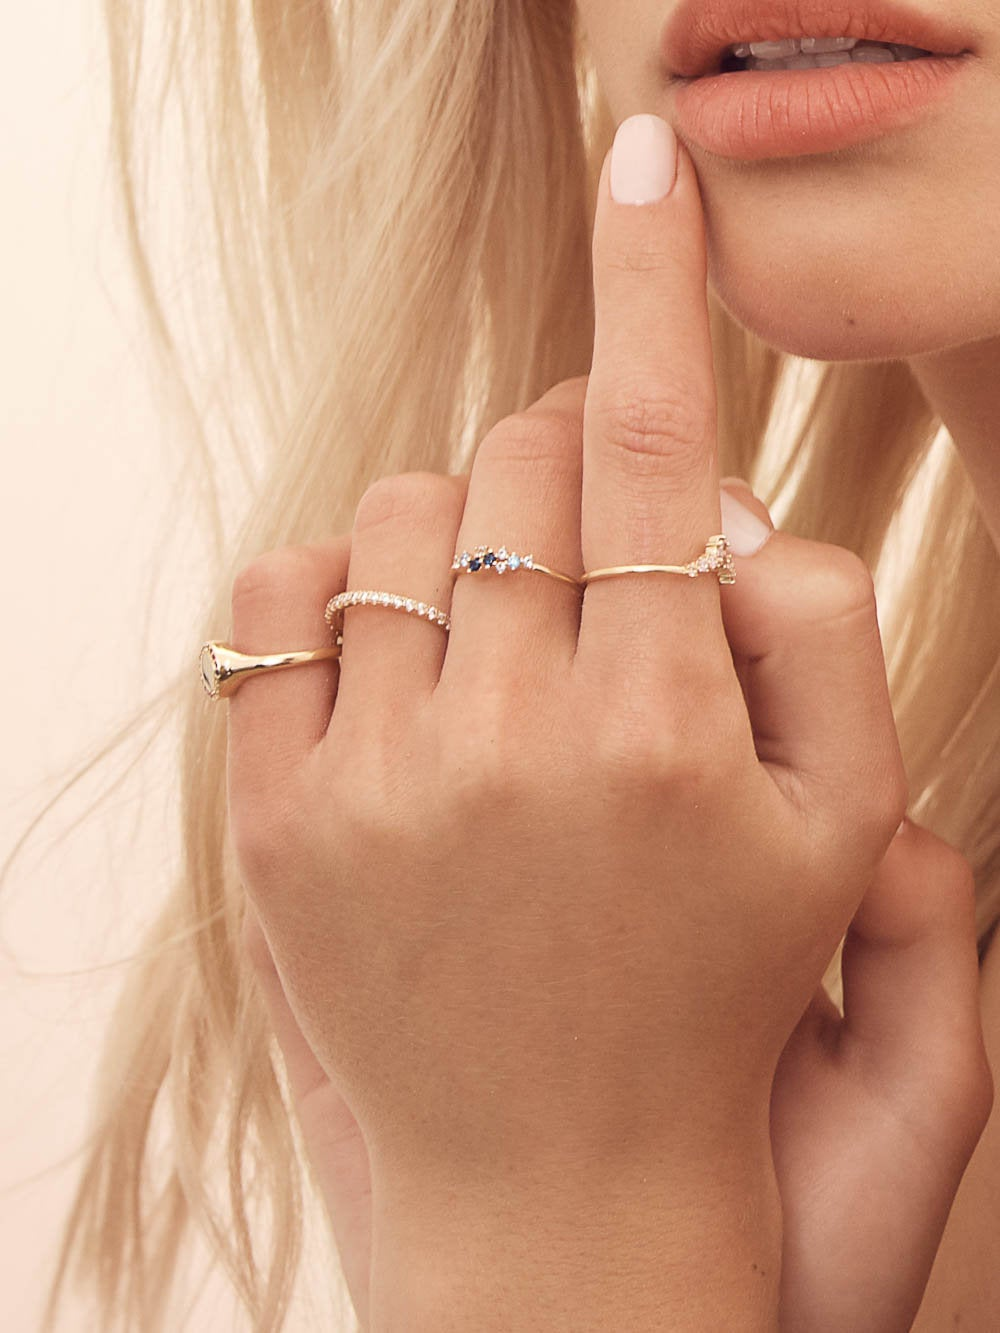 CZ Twilight Dainty Gold Ring by The Faint Hearted Jewelry